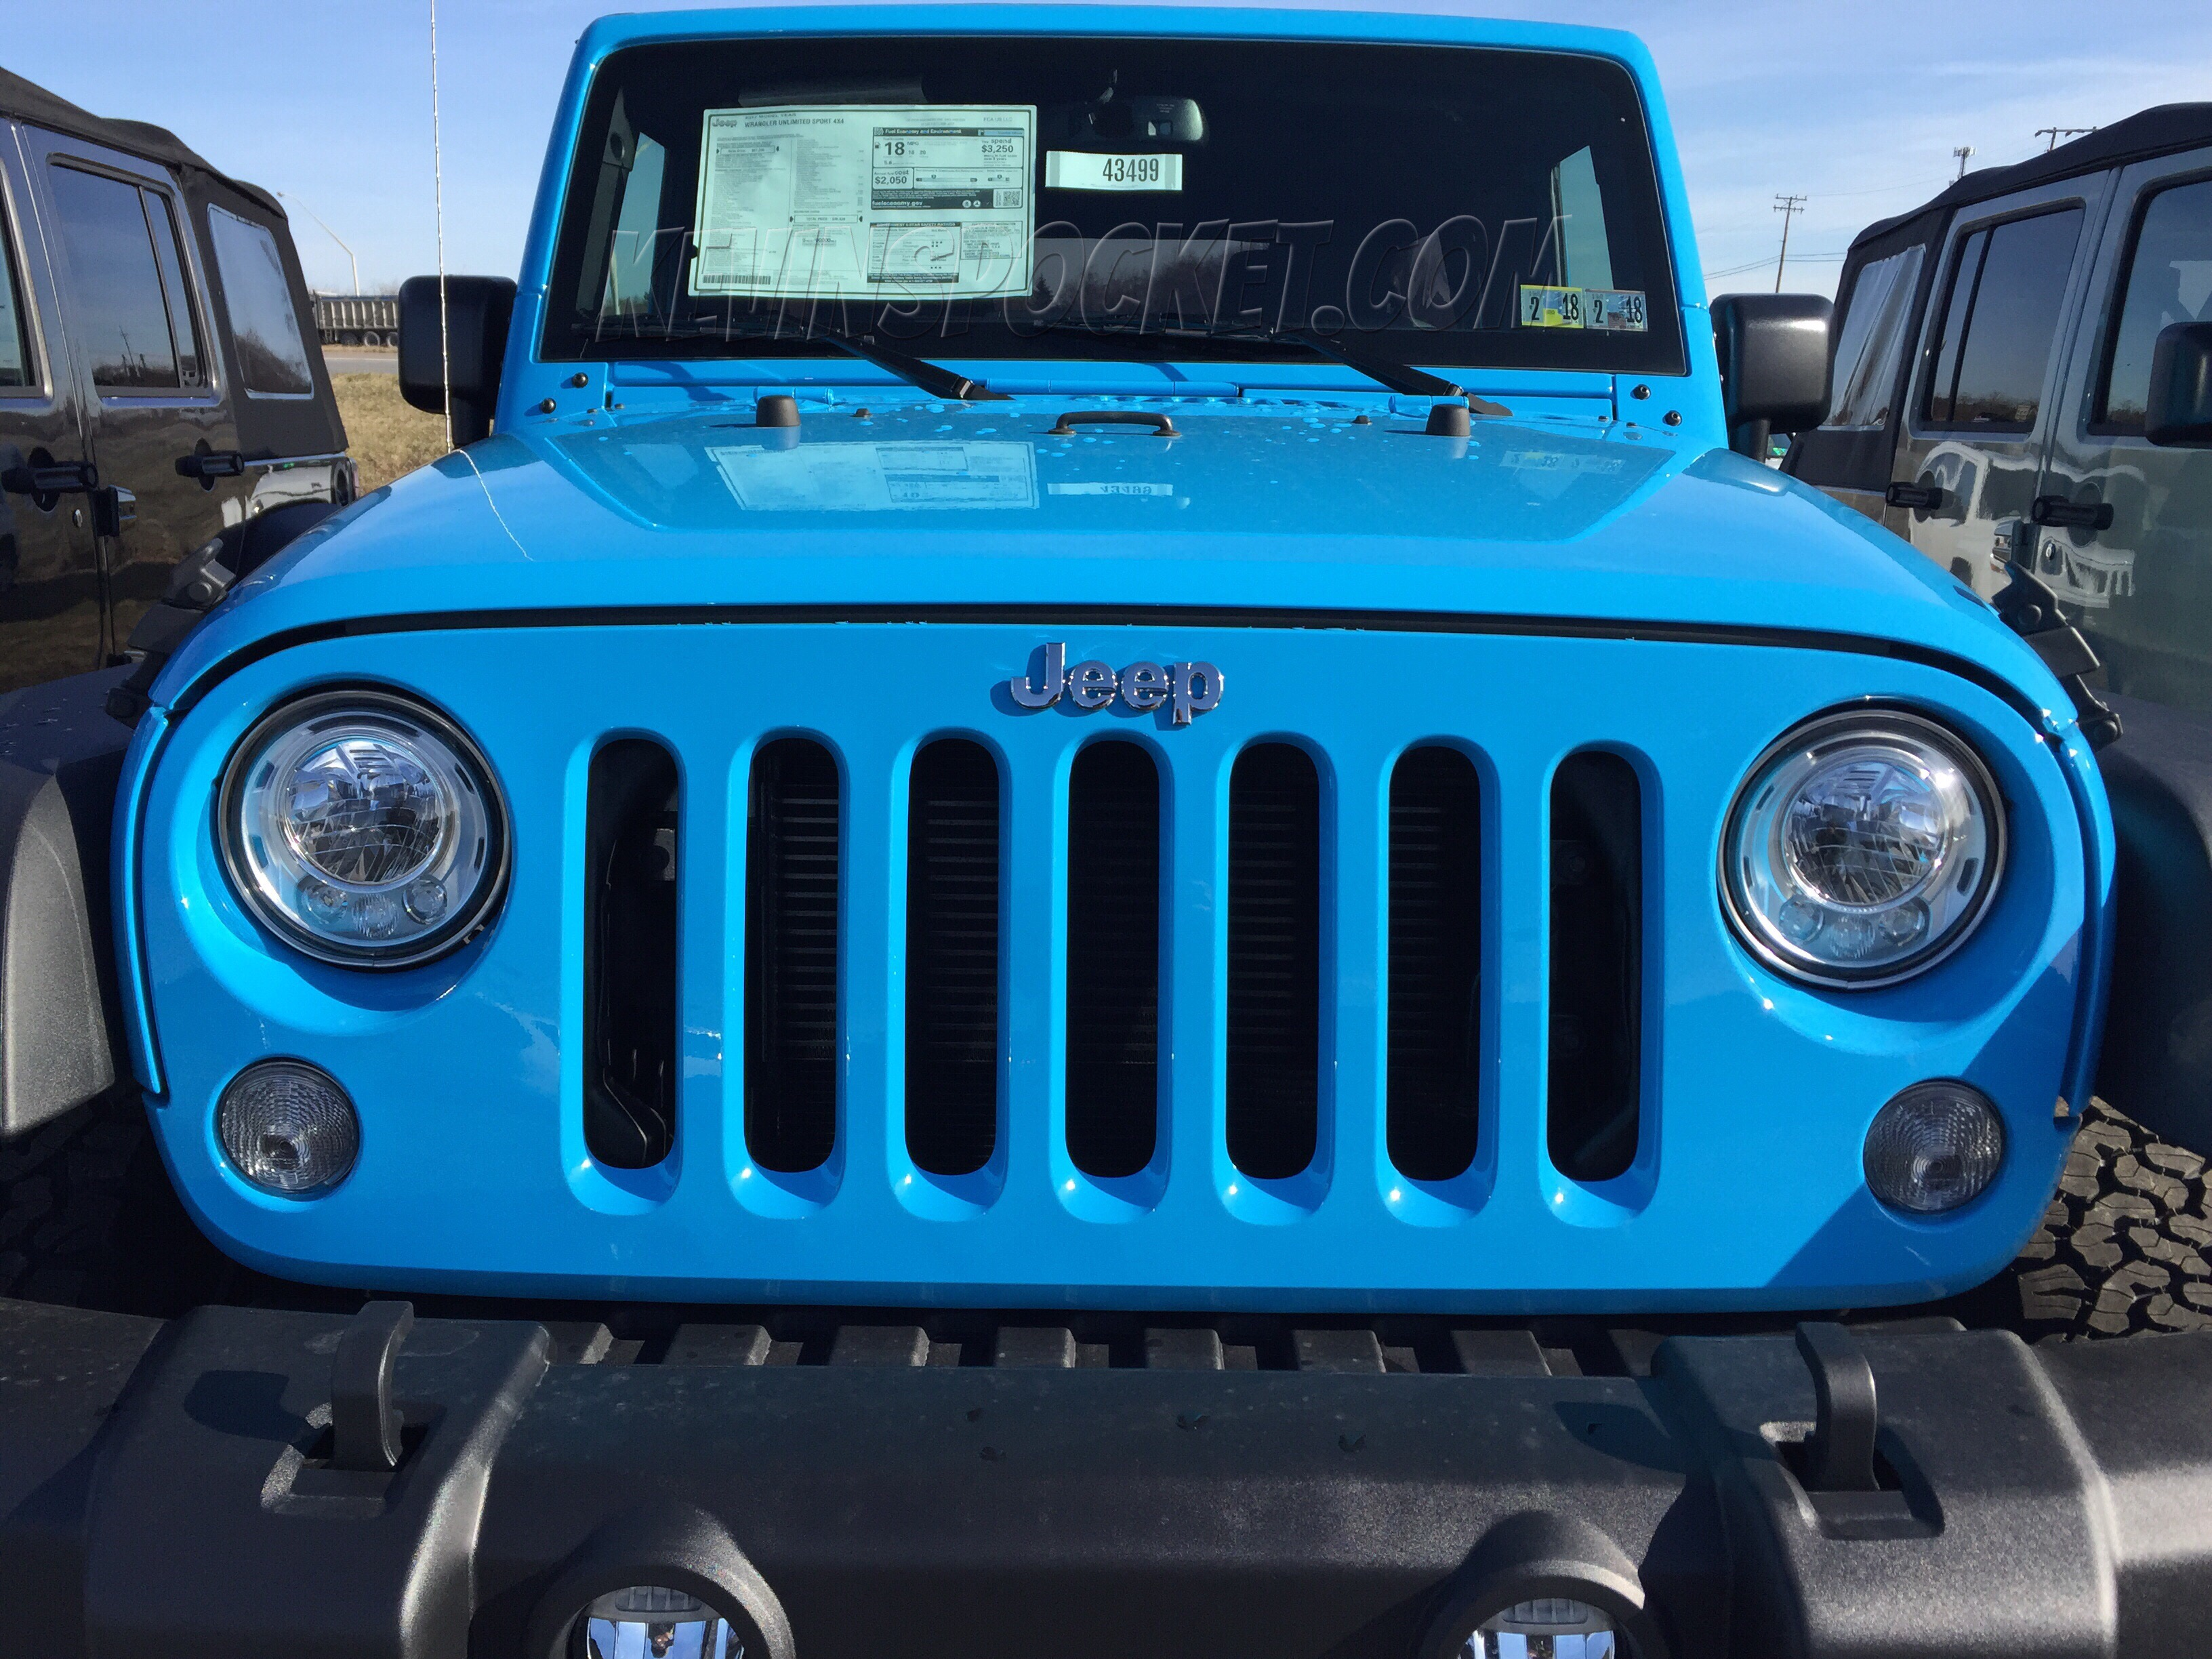 Chief Blue Wranglers Spotted! – kevinspocket